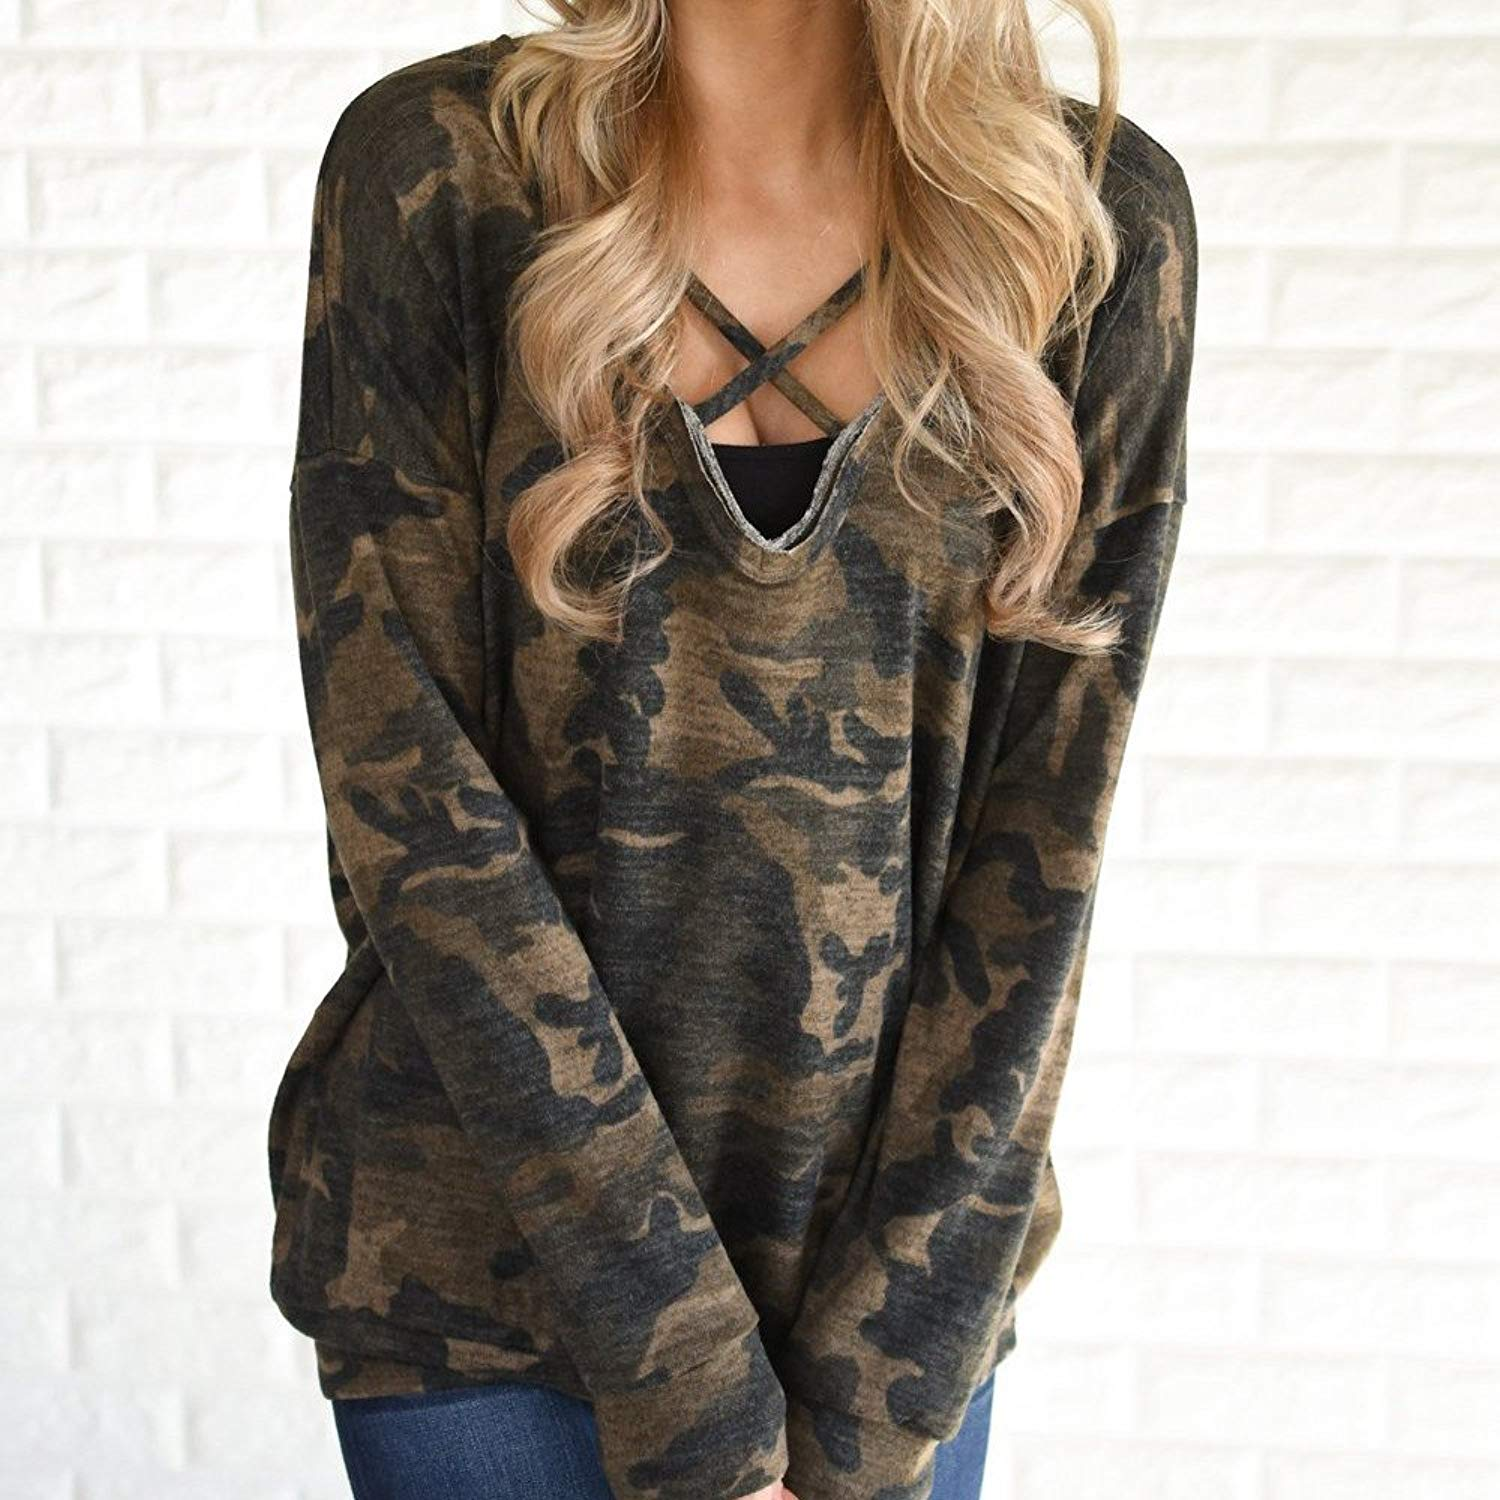 UPLOTER__Shirts Women Camouflage Loose Long Sleeve Round Neck Pullover Shirt Blouse Top Shirt